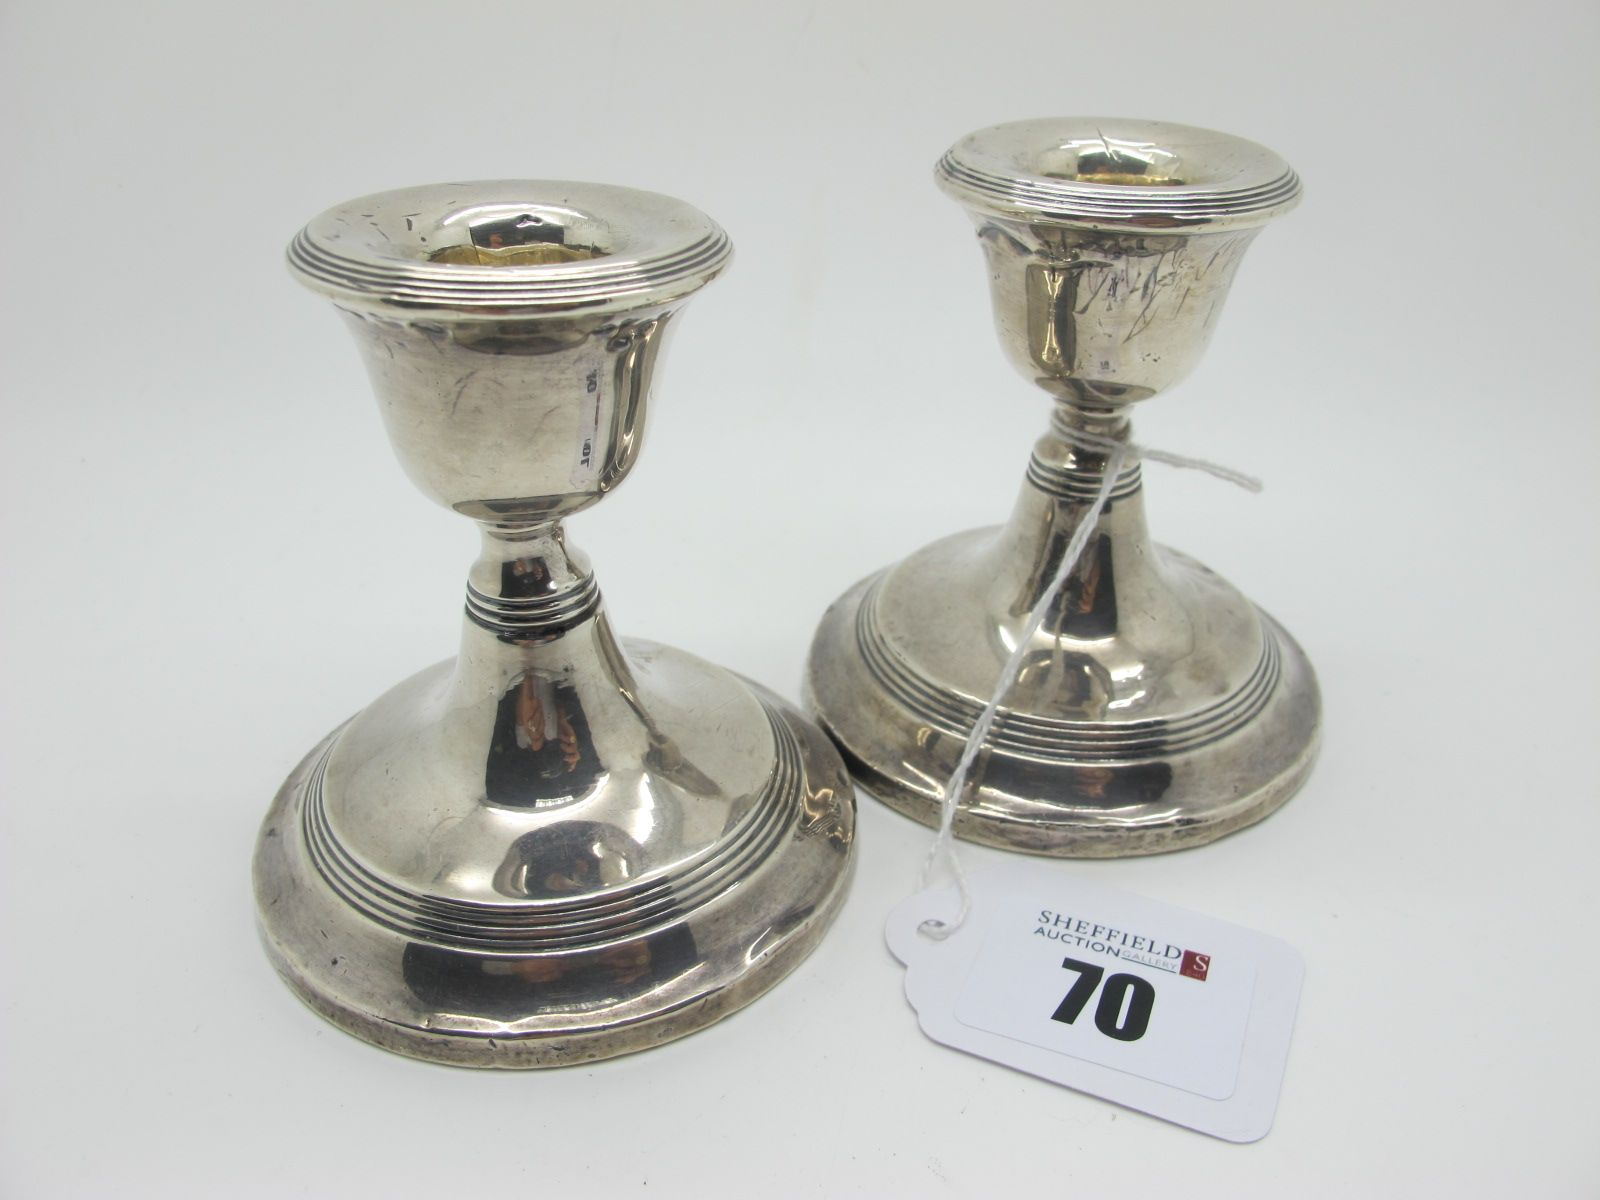 A Pair of Hallmarked Silver Dwarf Candlesticks, Birmingham 1913, with reeded band detail, bases (